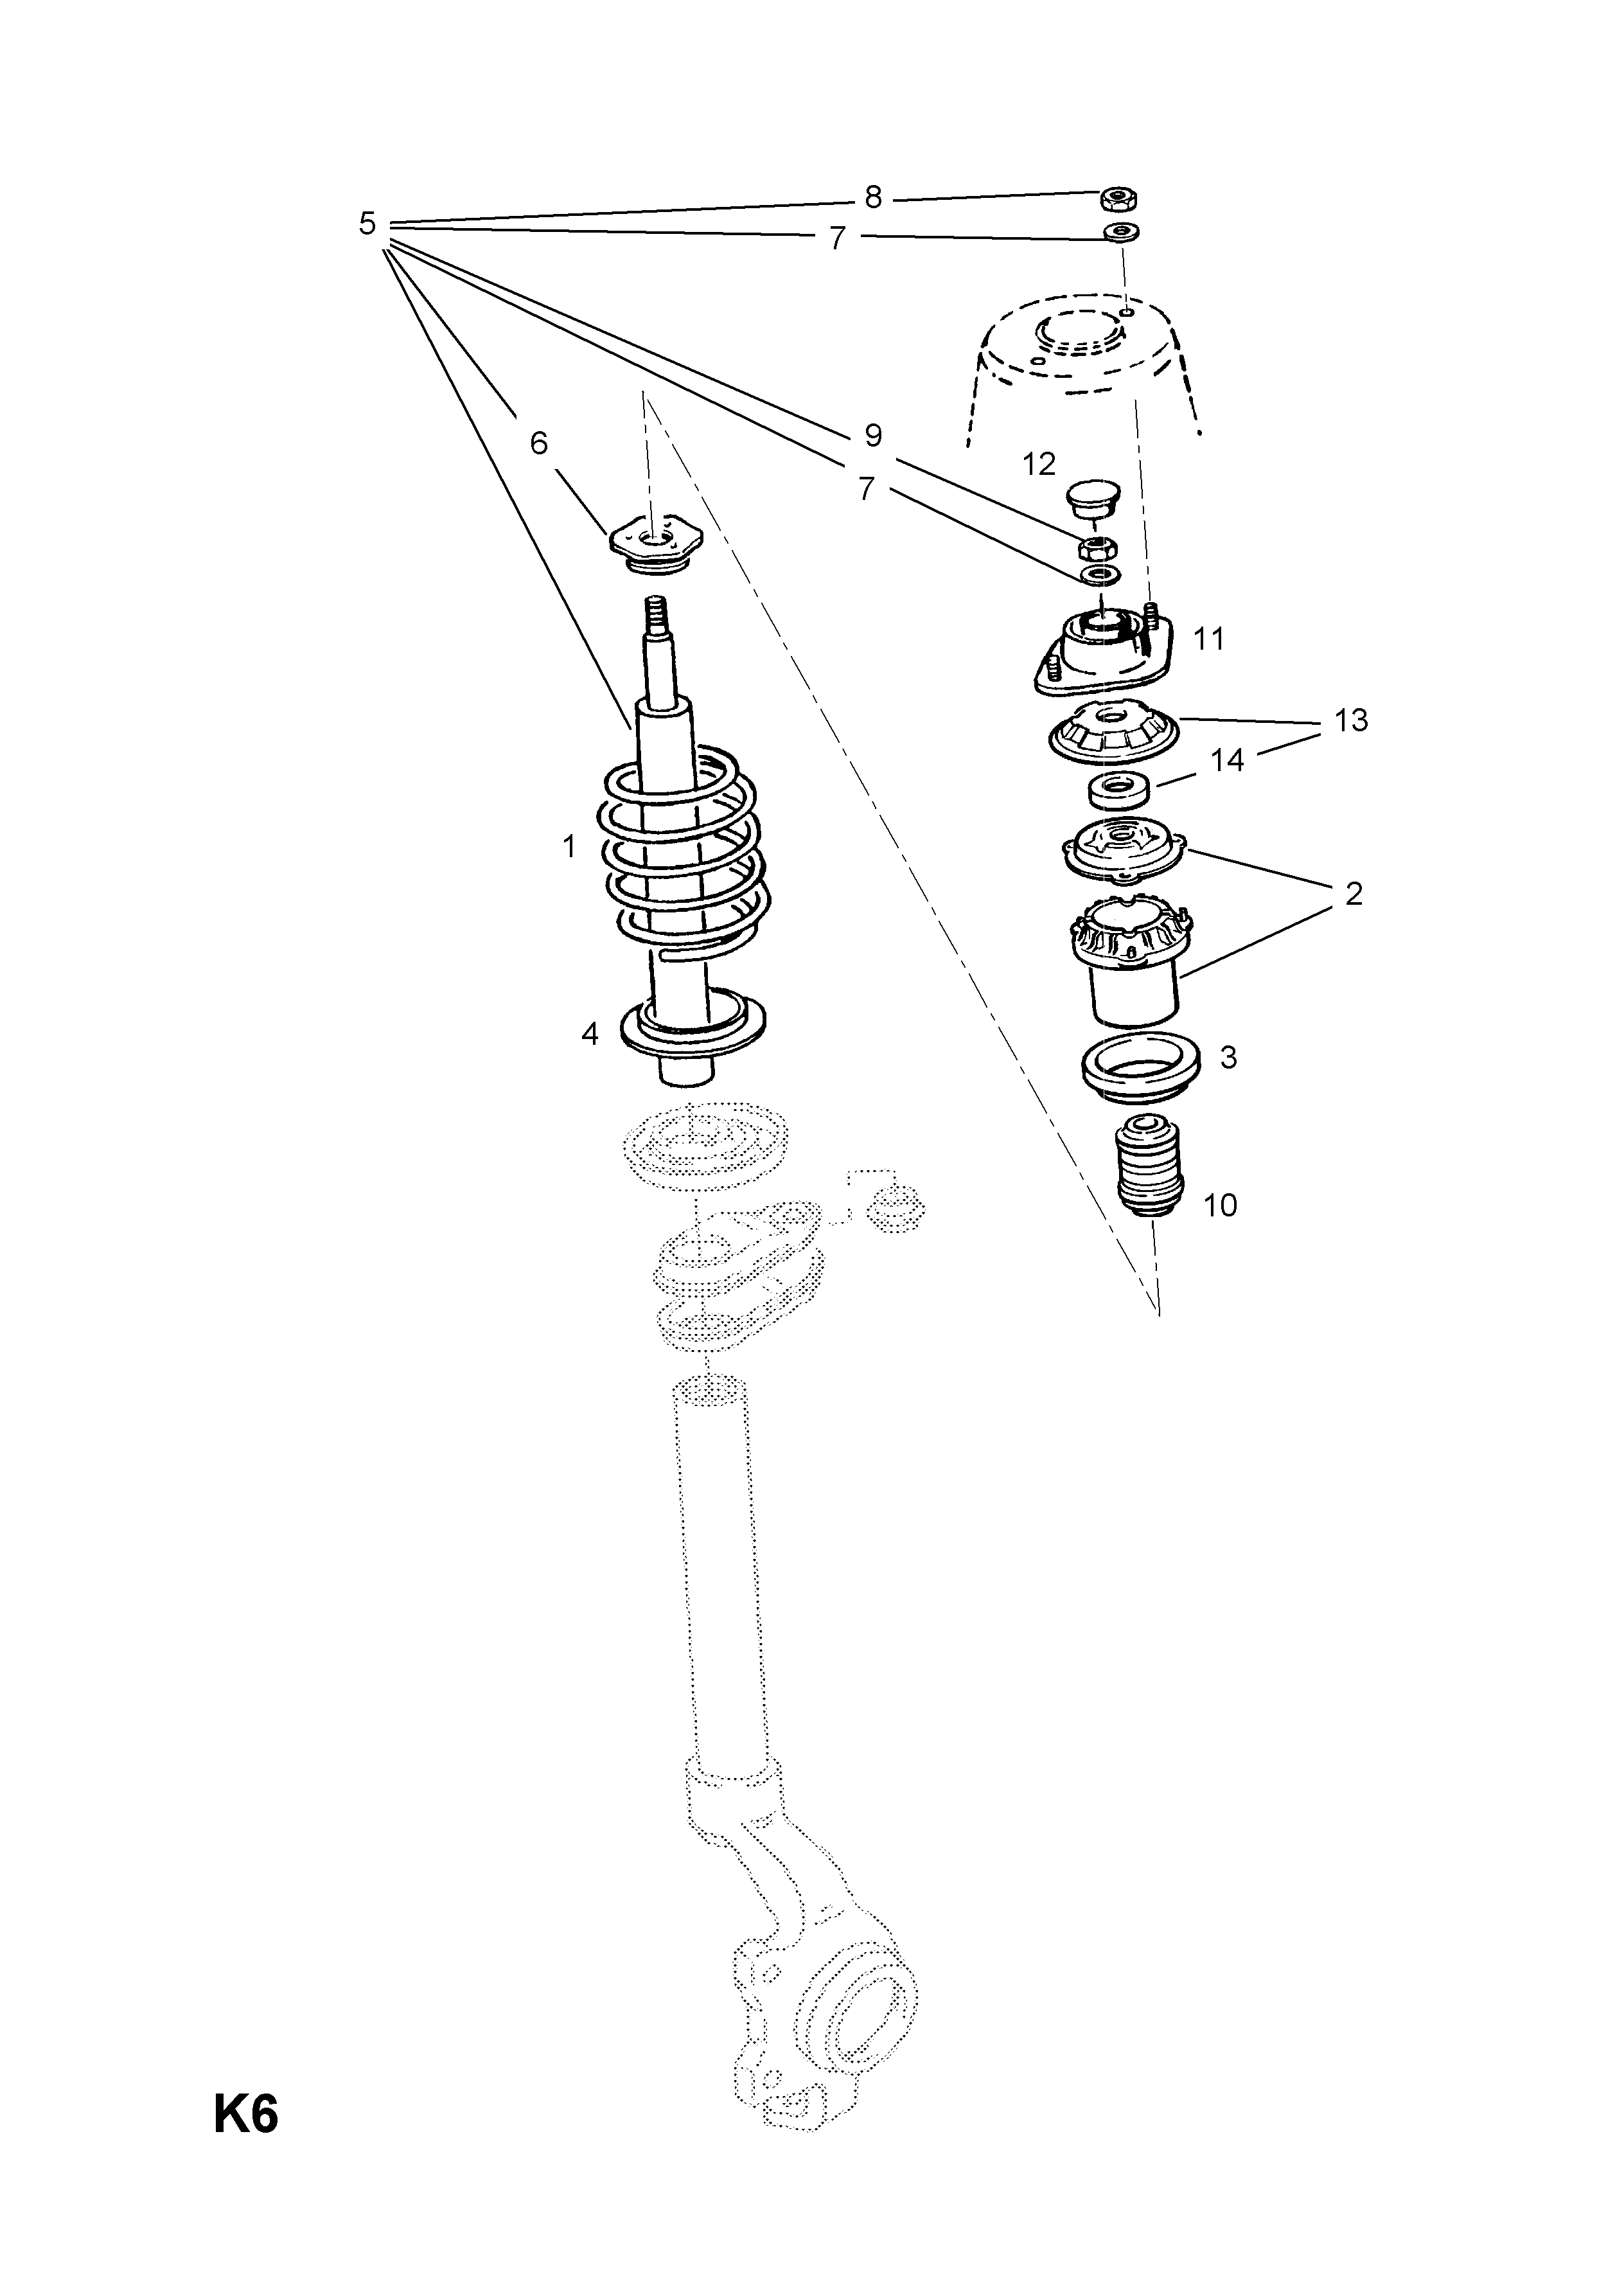 Opel Transmission Diagrams Front Springs 17dlu717drlu7 Used With Manual Astra F